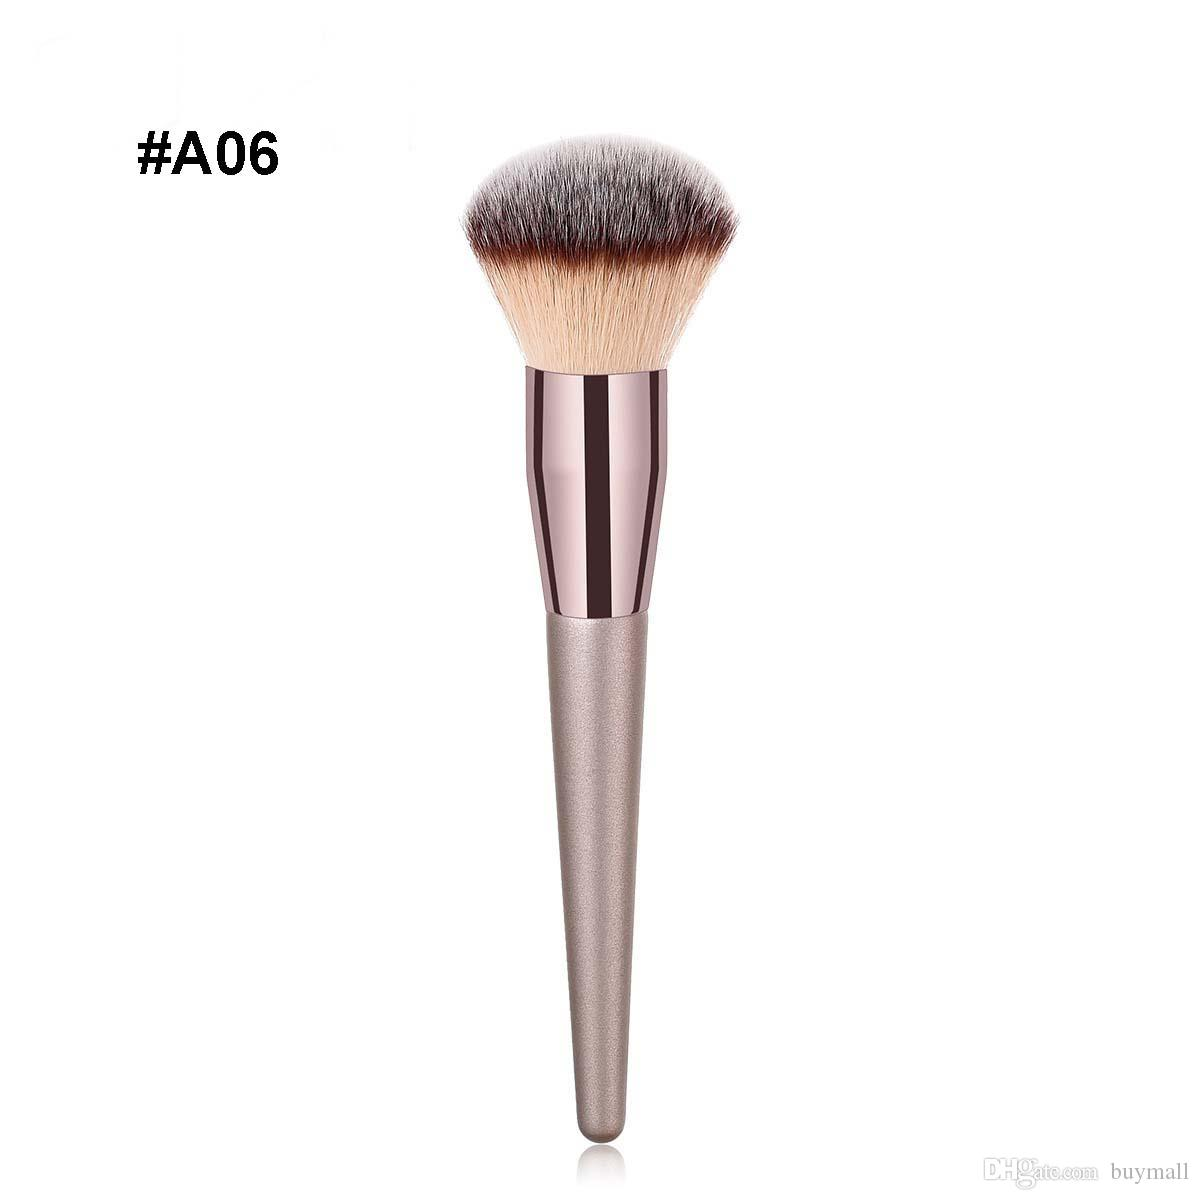 Premium Make Up Brush Champaign Gold Color Wood Handle Makeup Tool Accessories Single Cosmetic For Eyeshadow Blush Dhl Free Cases Set